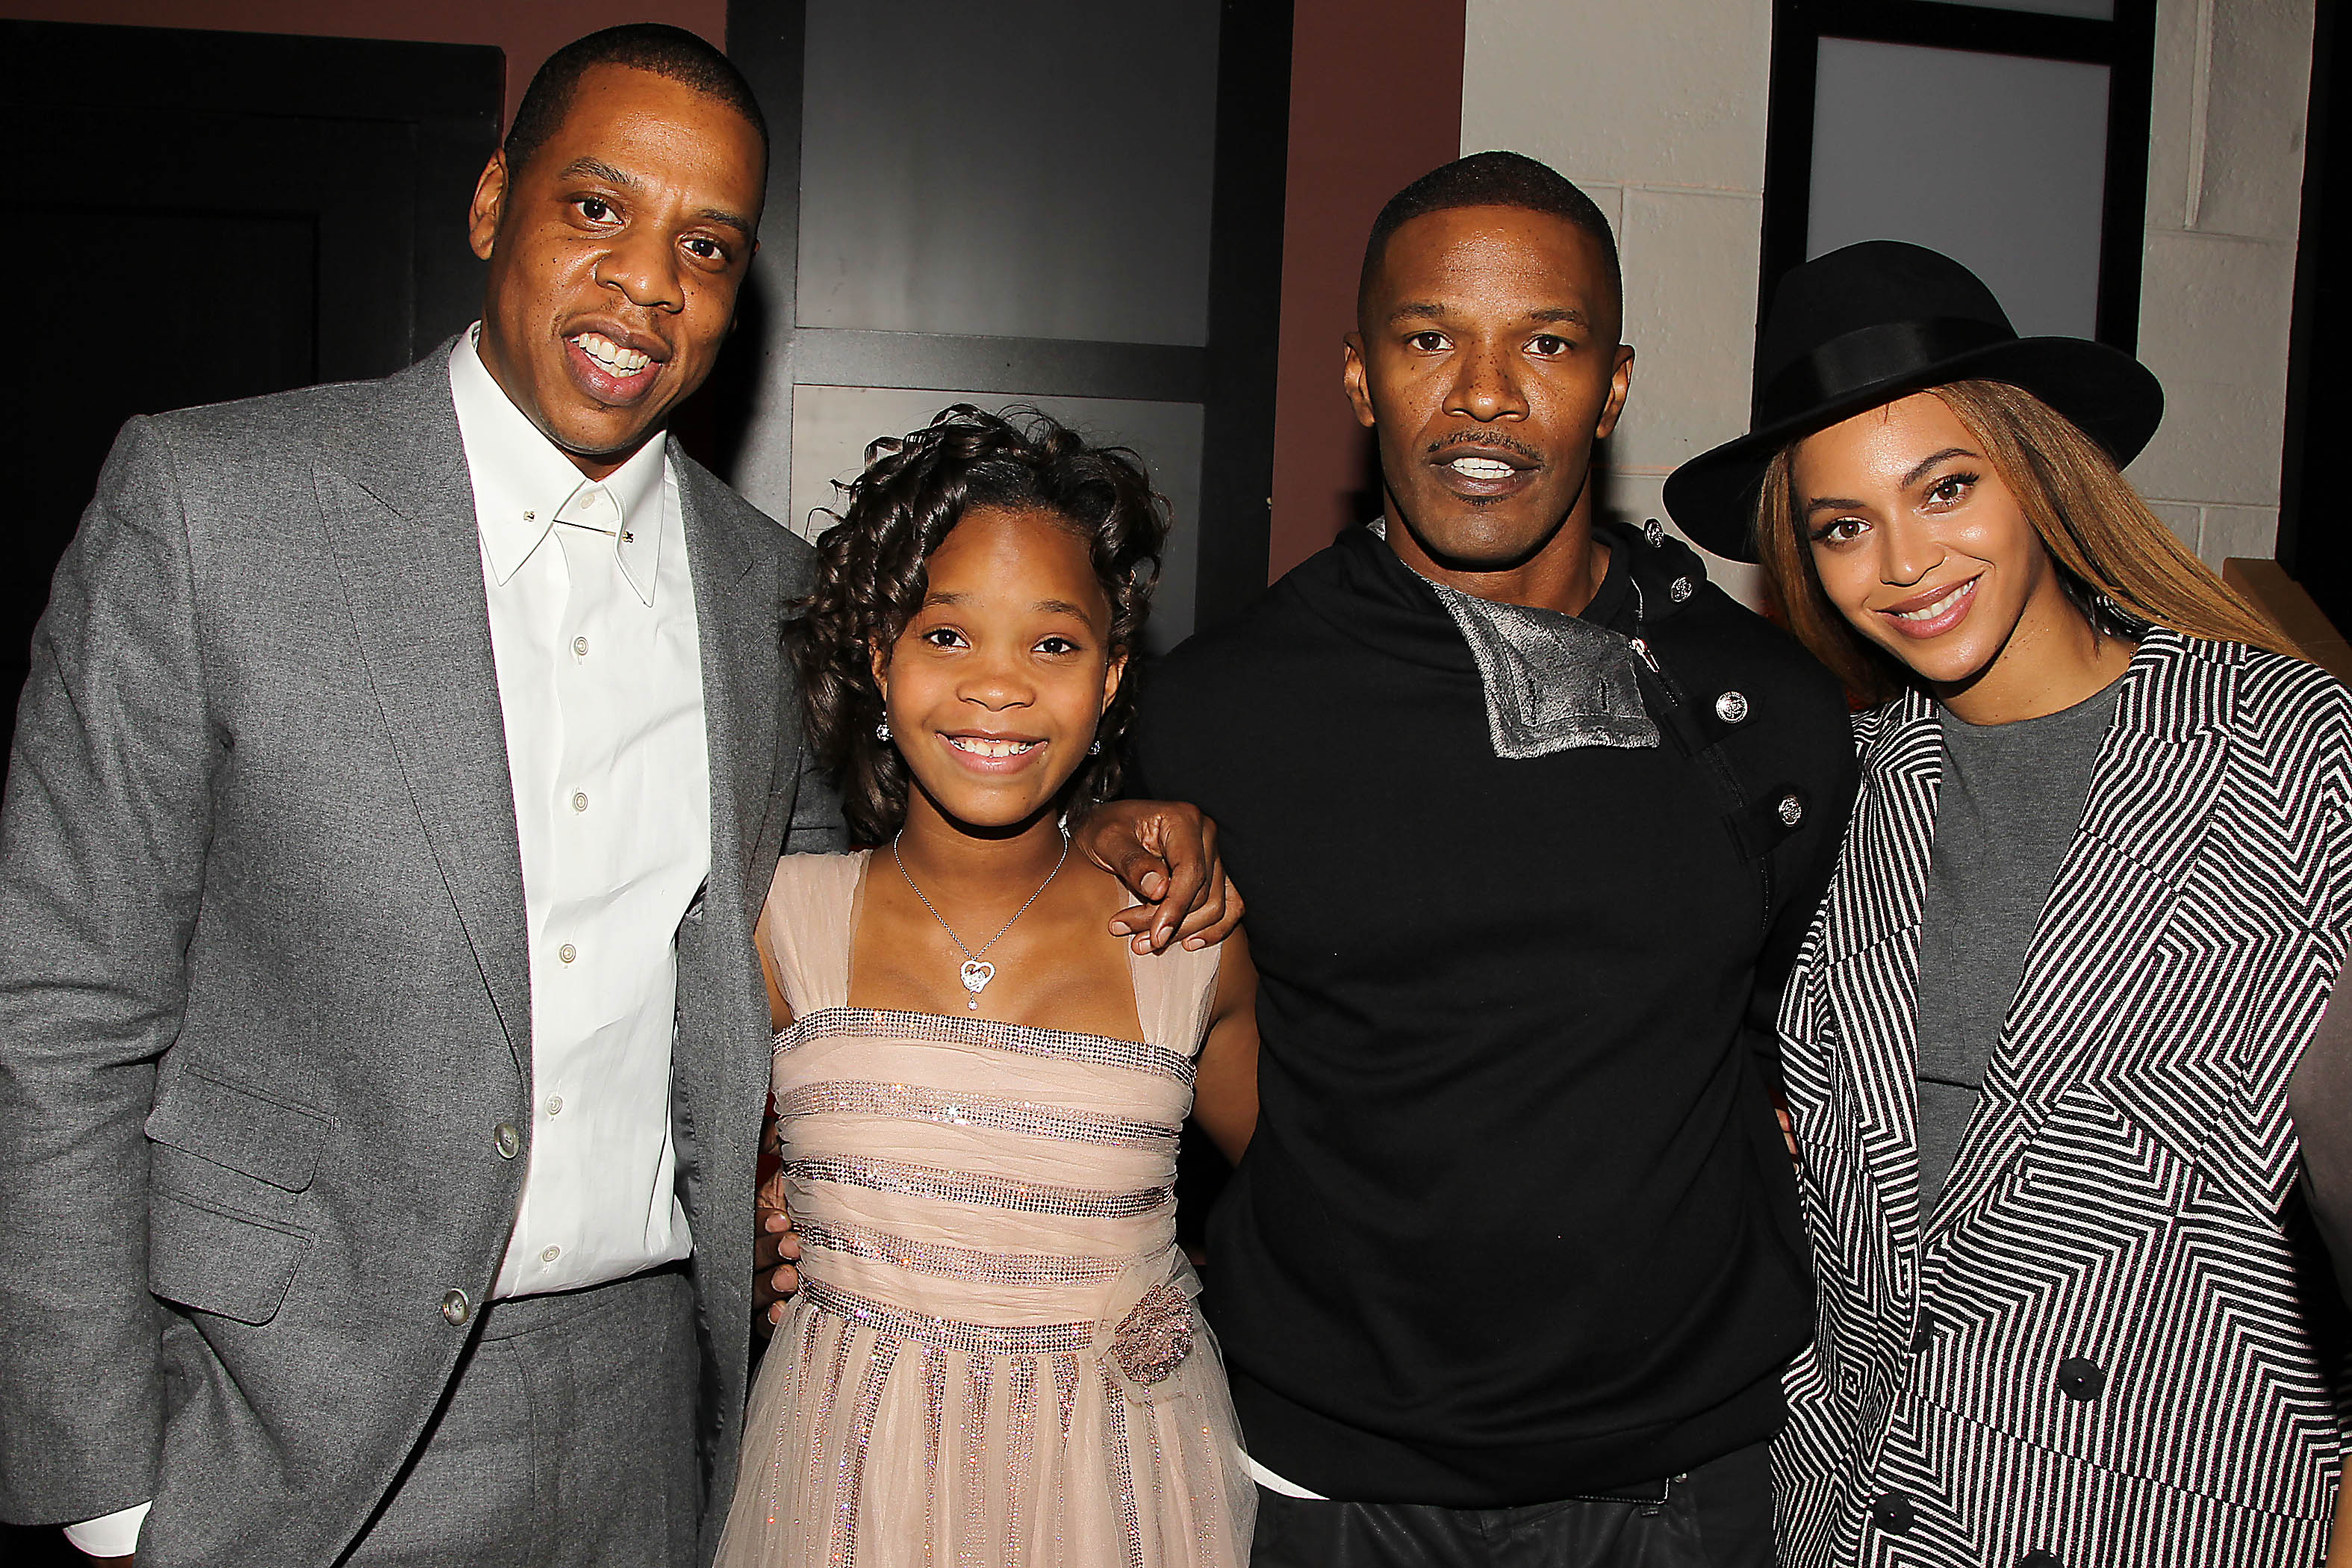 Photo of Quvenzhané Wallis & her friend actor  Jamie Foxx - Annie